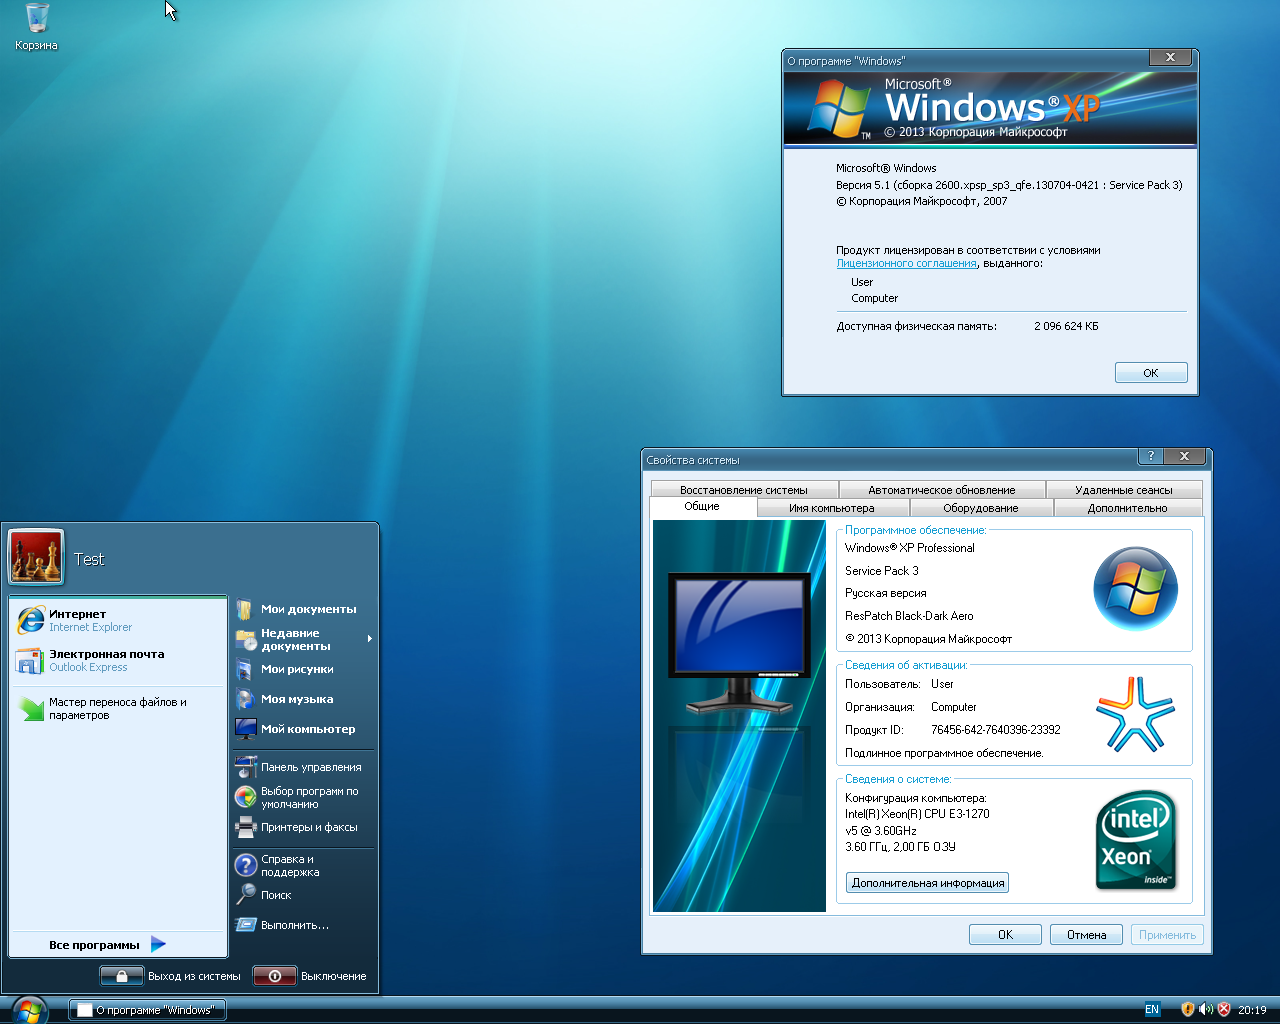 Windows xp professional sp3 rus скачать 32 bit.